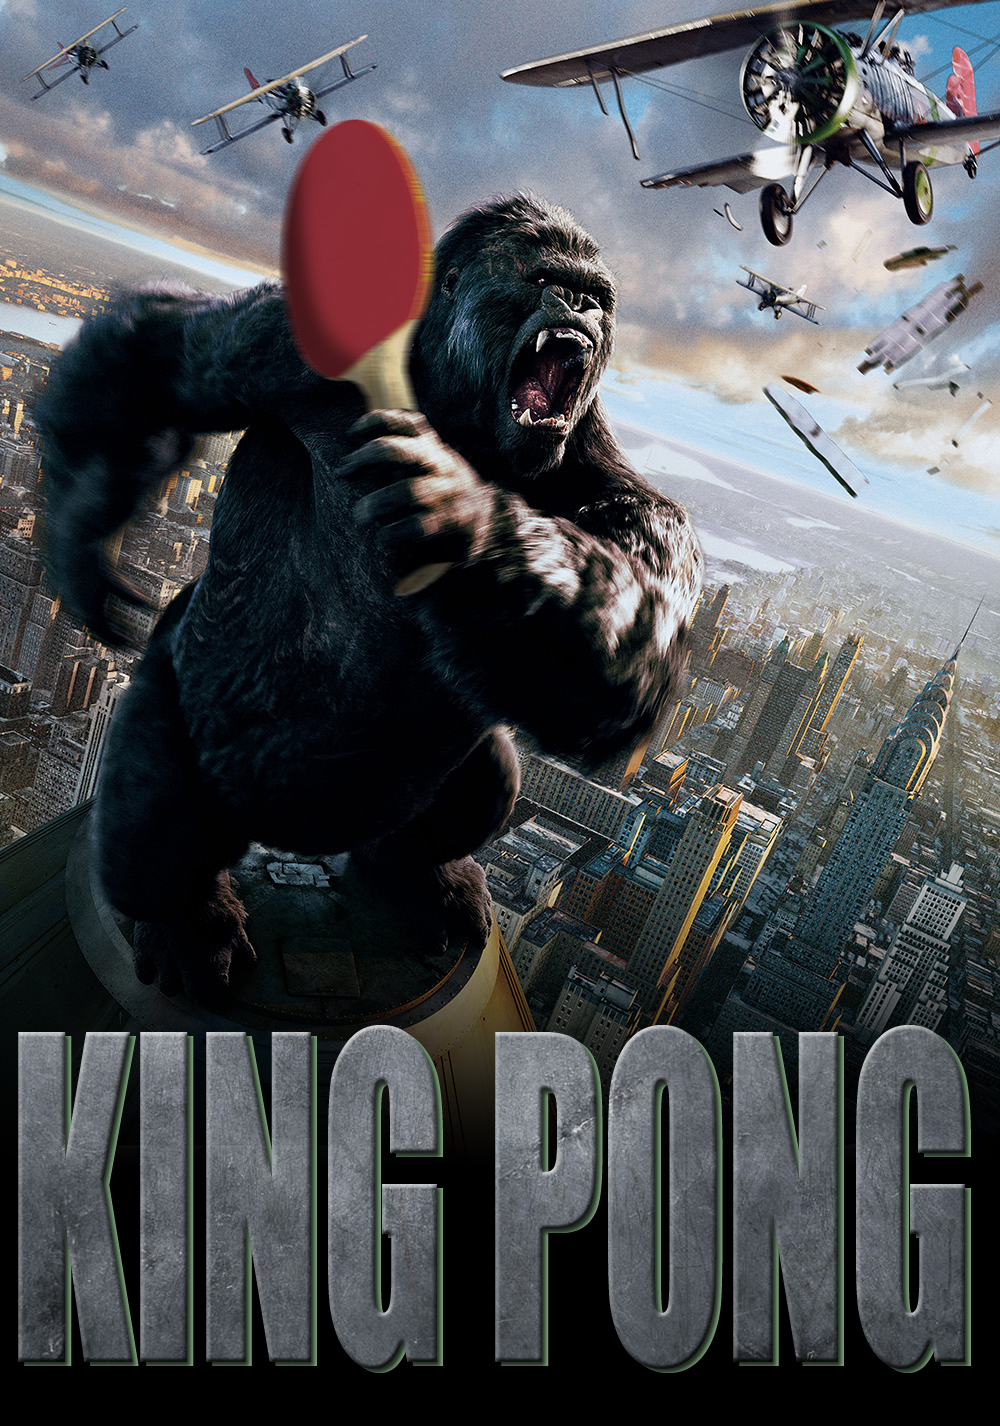 King Pong One letter off DesignCrowd